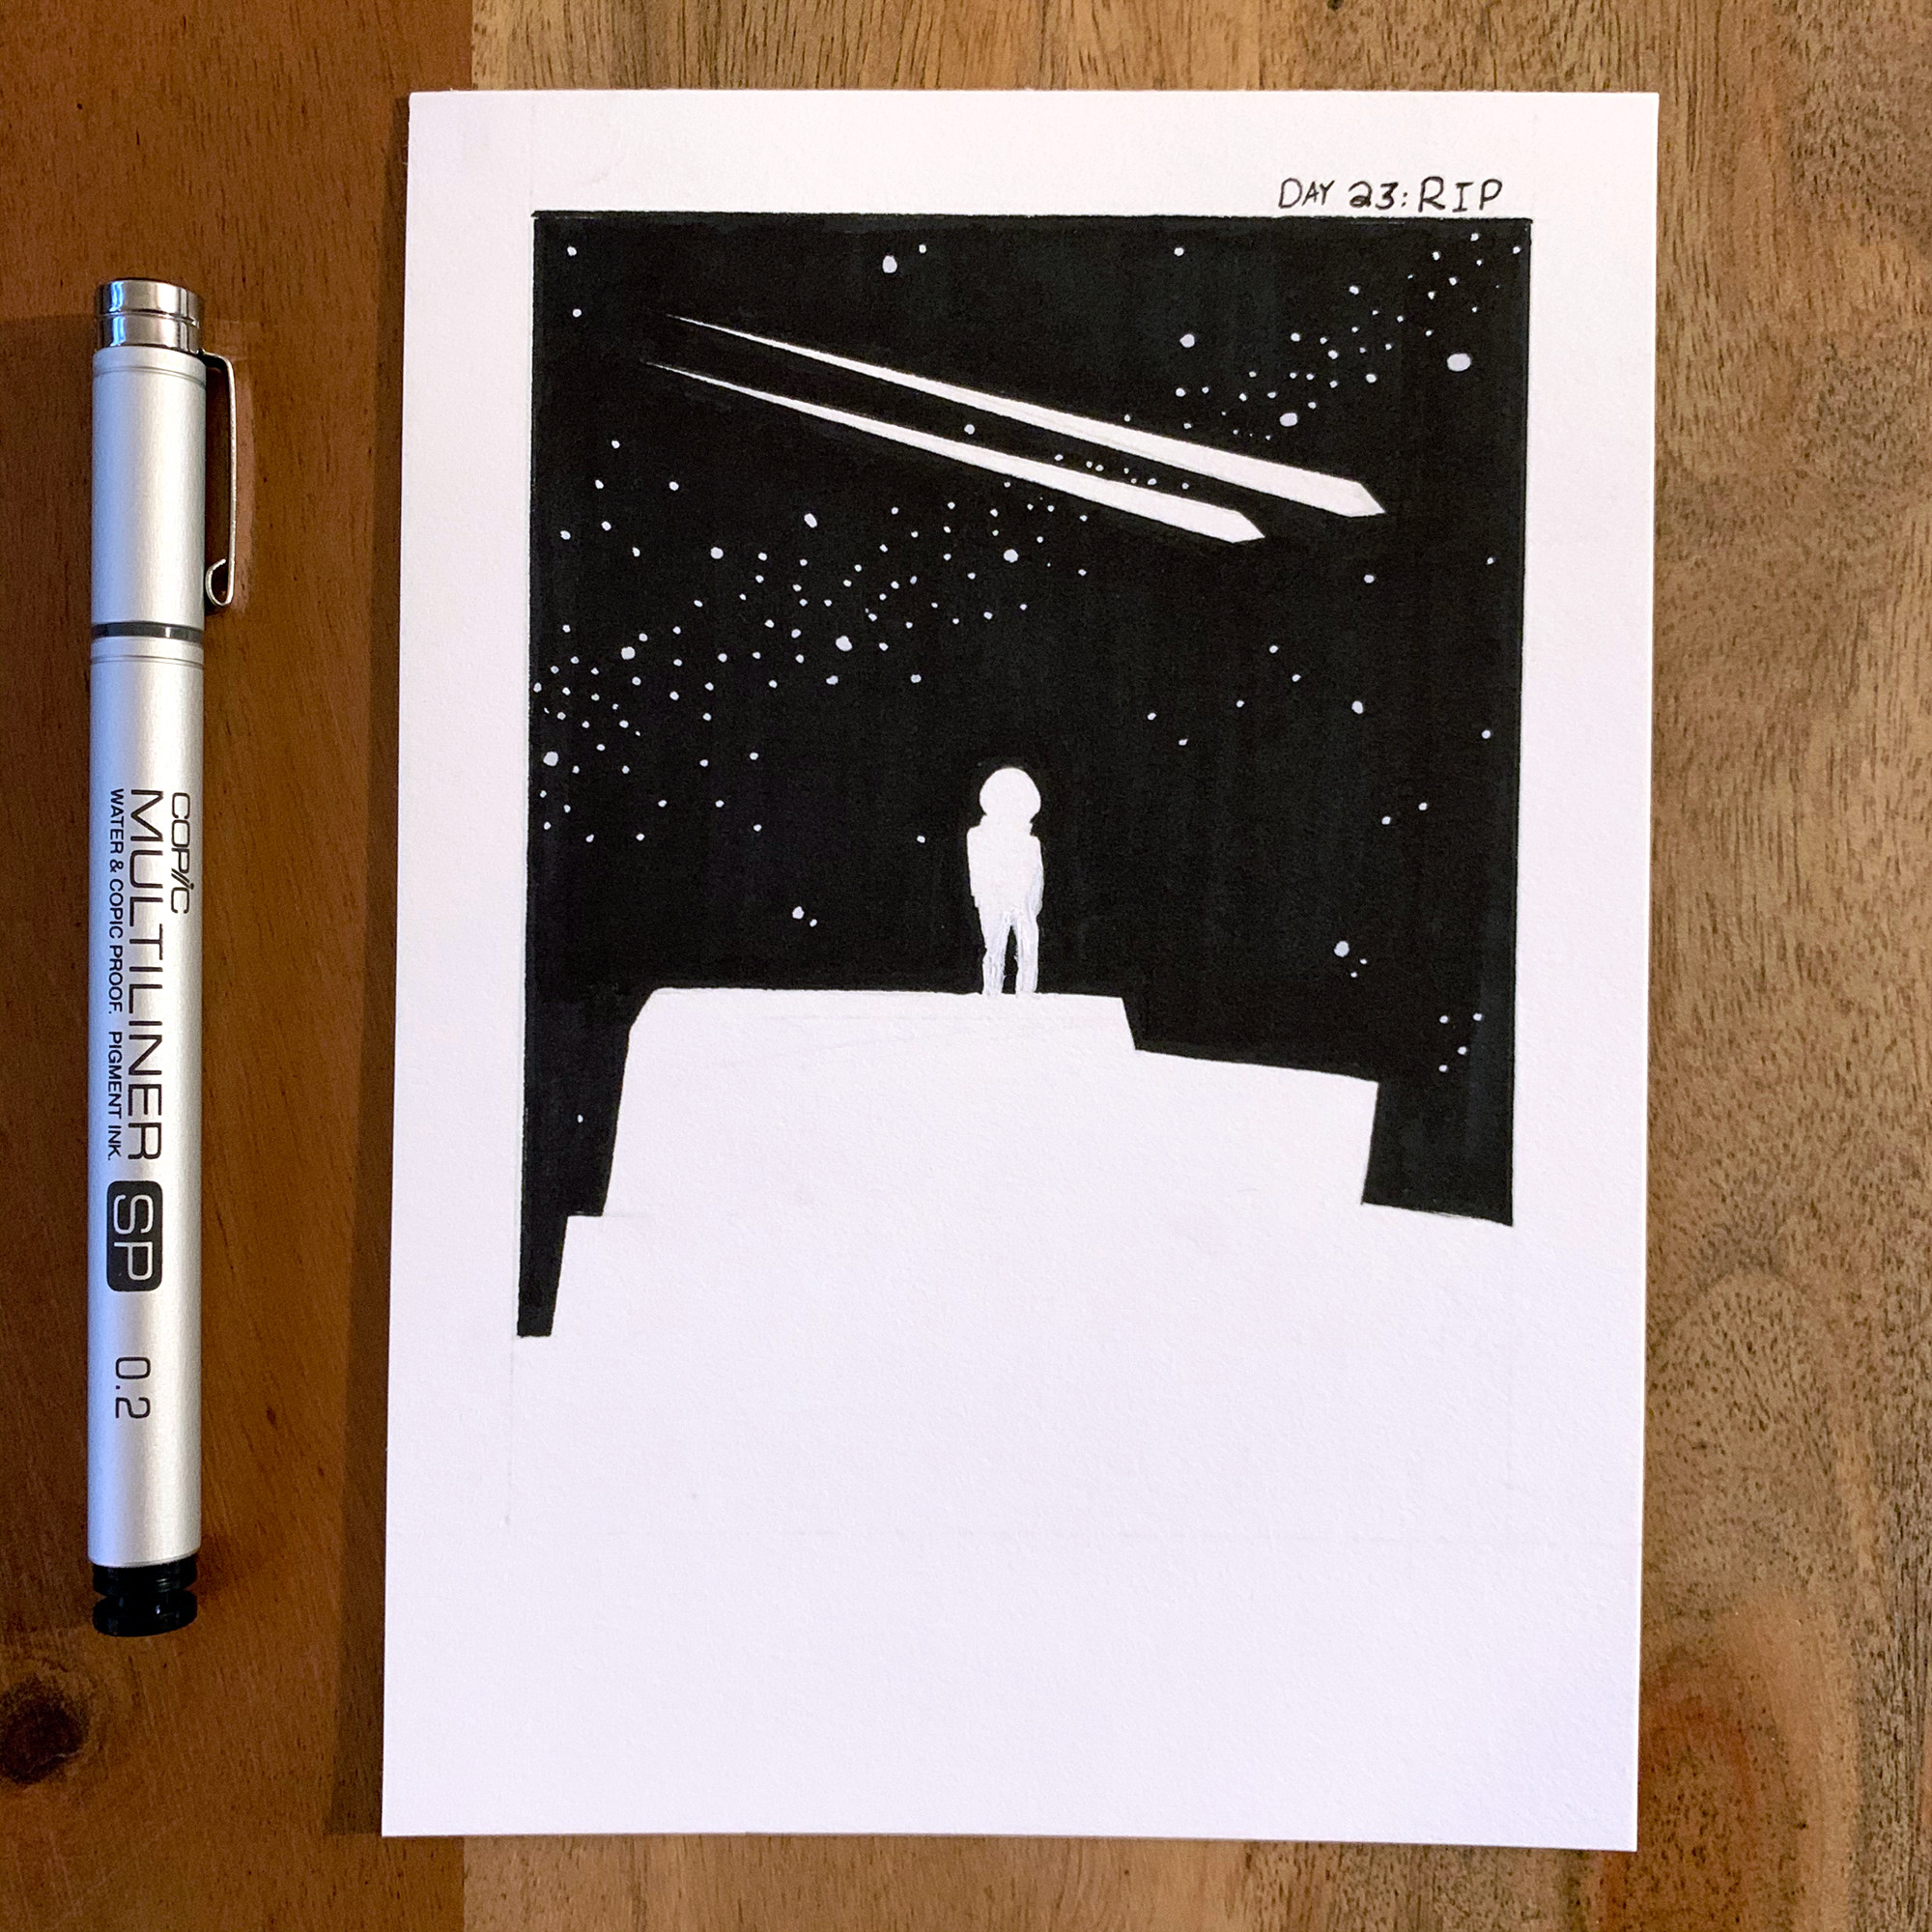 (Day 23: Rip) Every million cycles, shooting stars rip our sky.